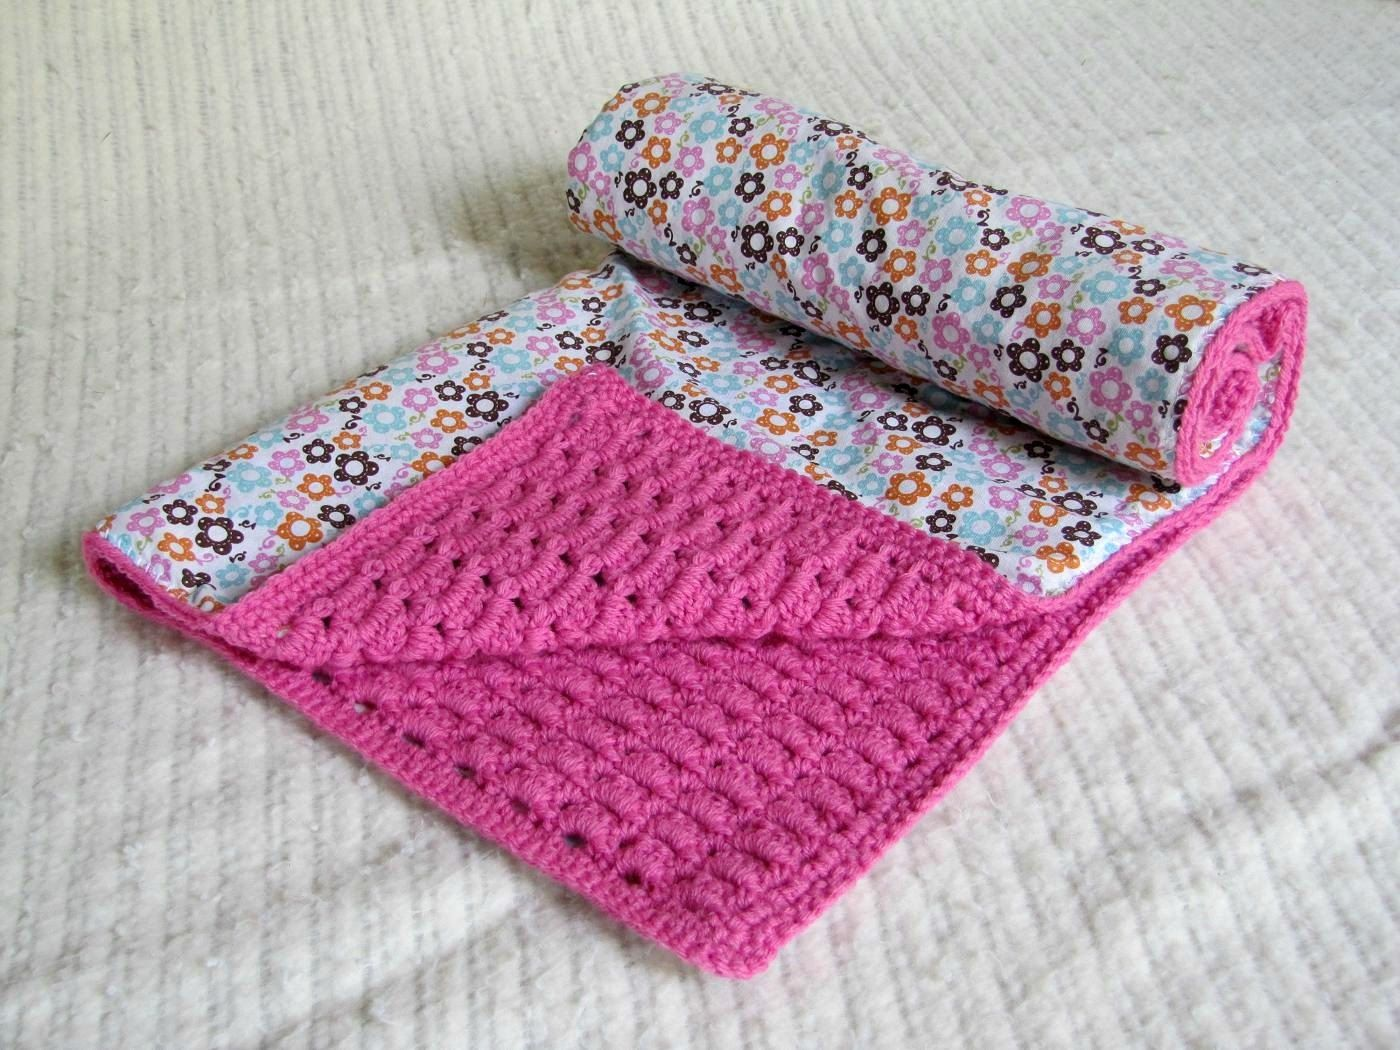 Sweet dreams hand crocheted lined baby blanket bright pink by modern crochet sweet dreams hand crocheted lined baby blanket bright pink by rosebudboutiqueandco on etsy bankloansurffo Choice Image